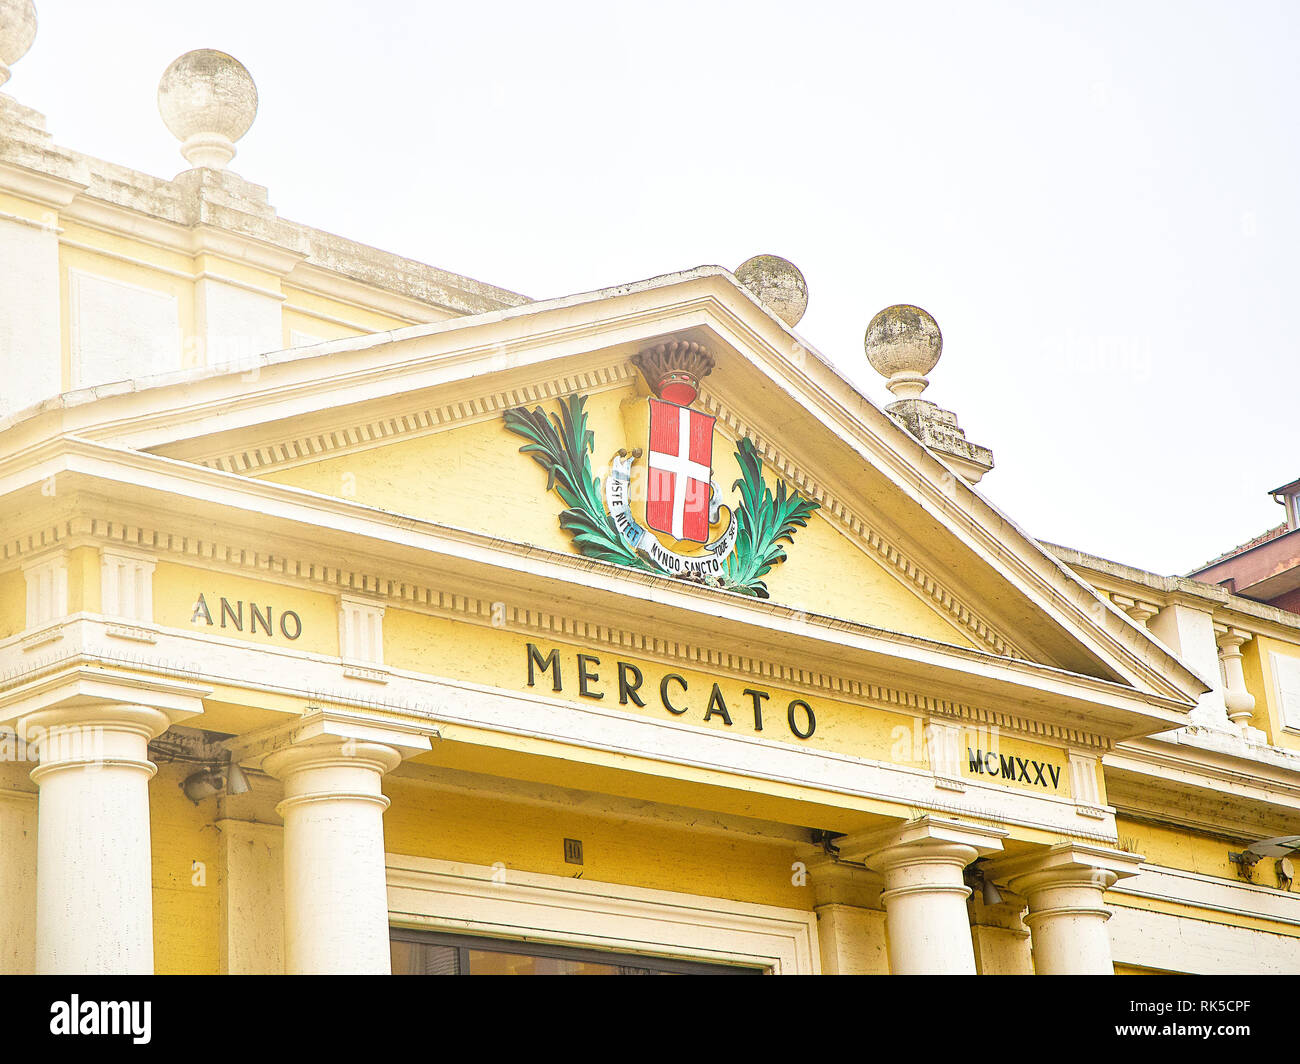 Main facade detail of The Mercato Coperto market. View from the Piazza della Liberta square. Asti, Piedmont, Italy. - Stock Image